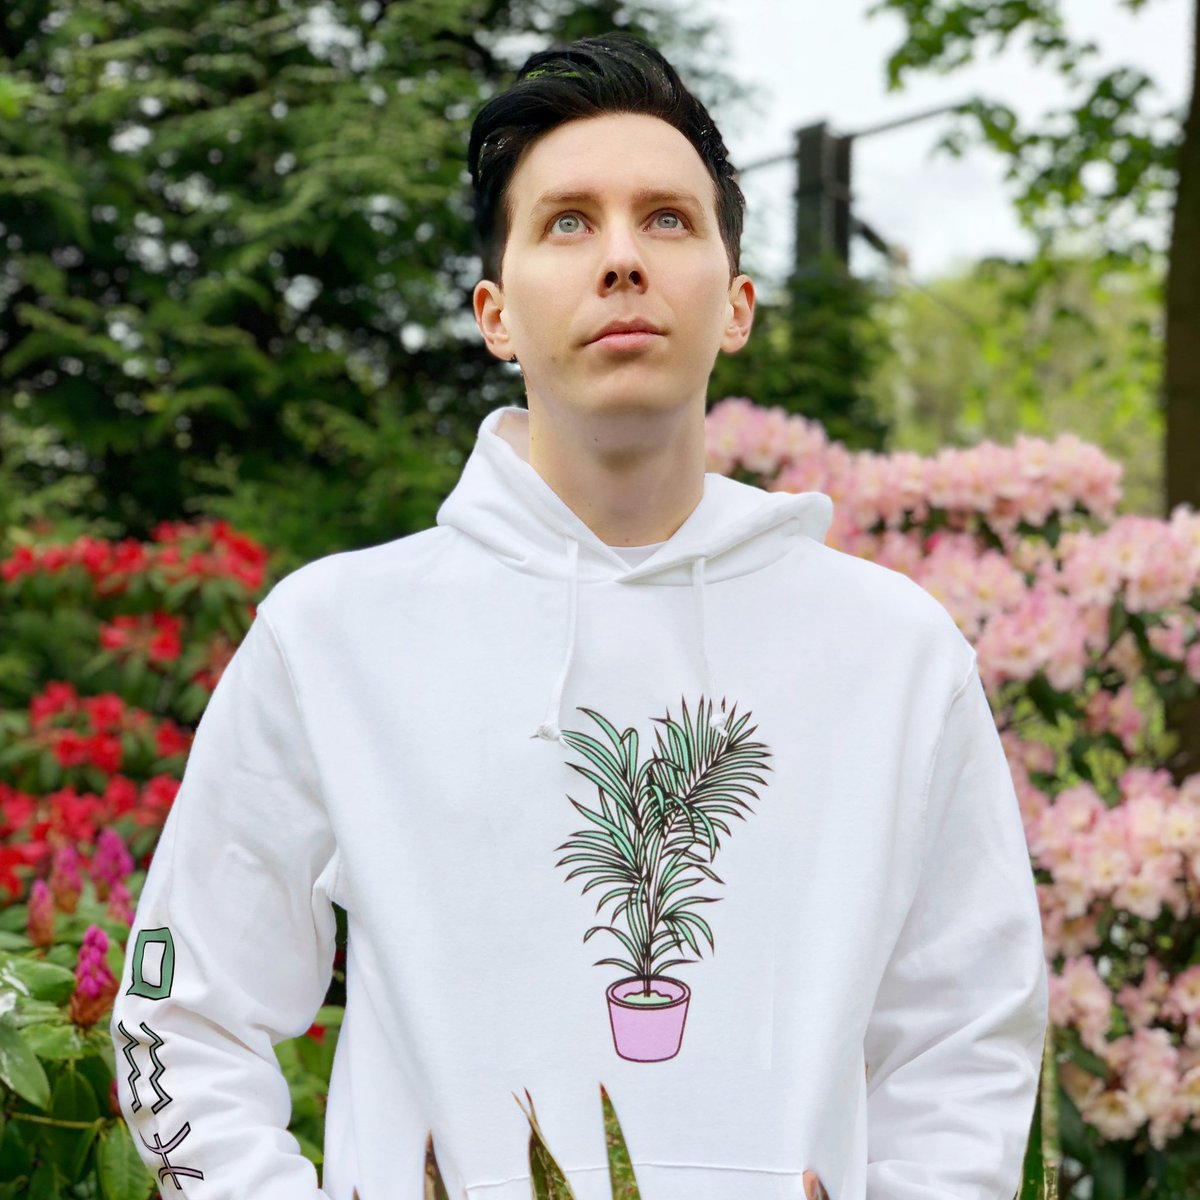 AmazingPhil Shop is here! 🍃 amazingphilshop.com 🍃